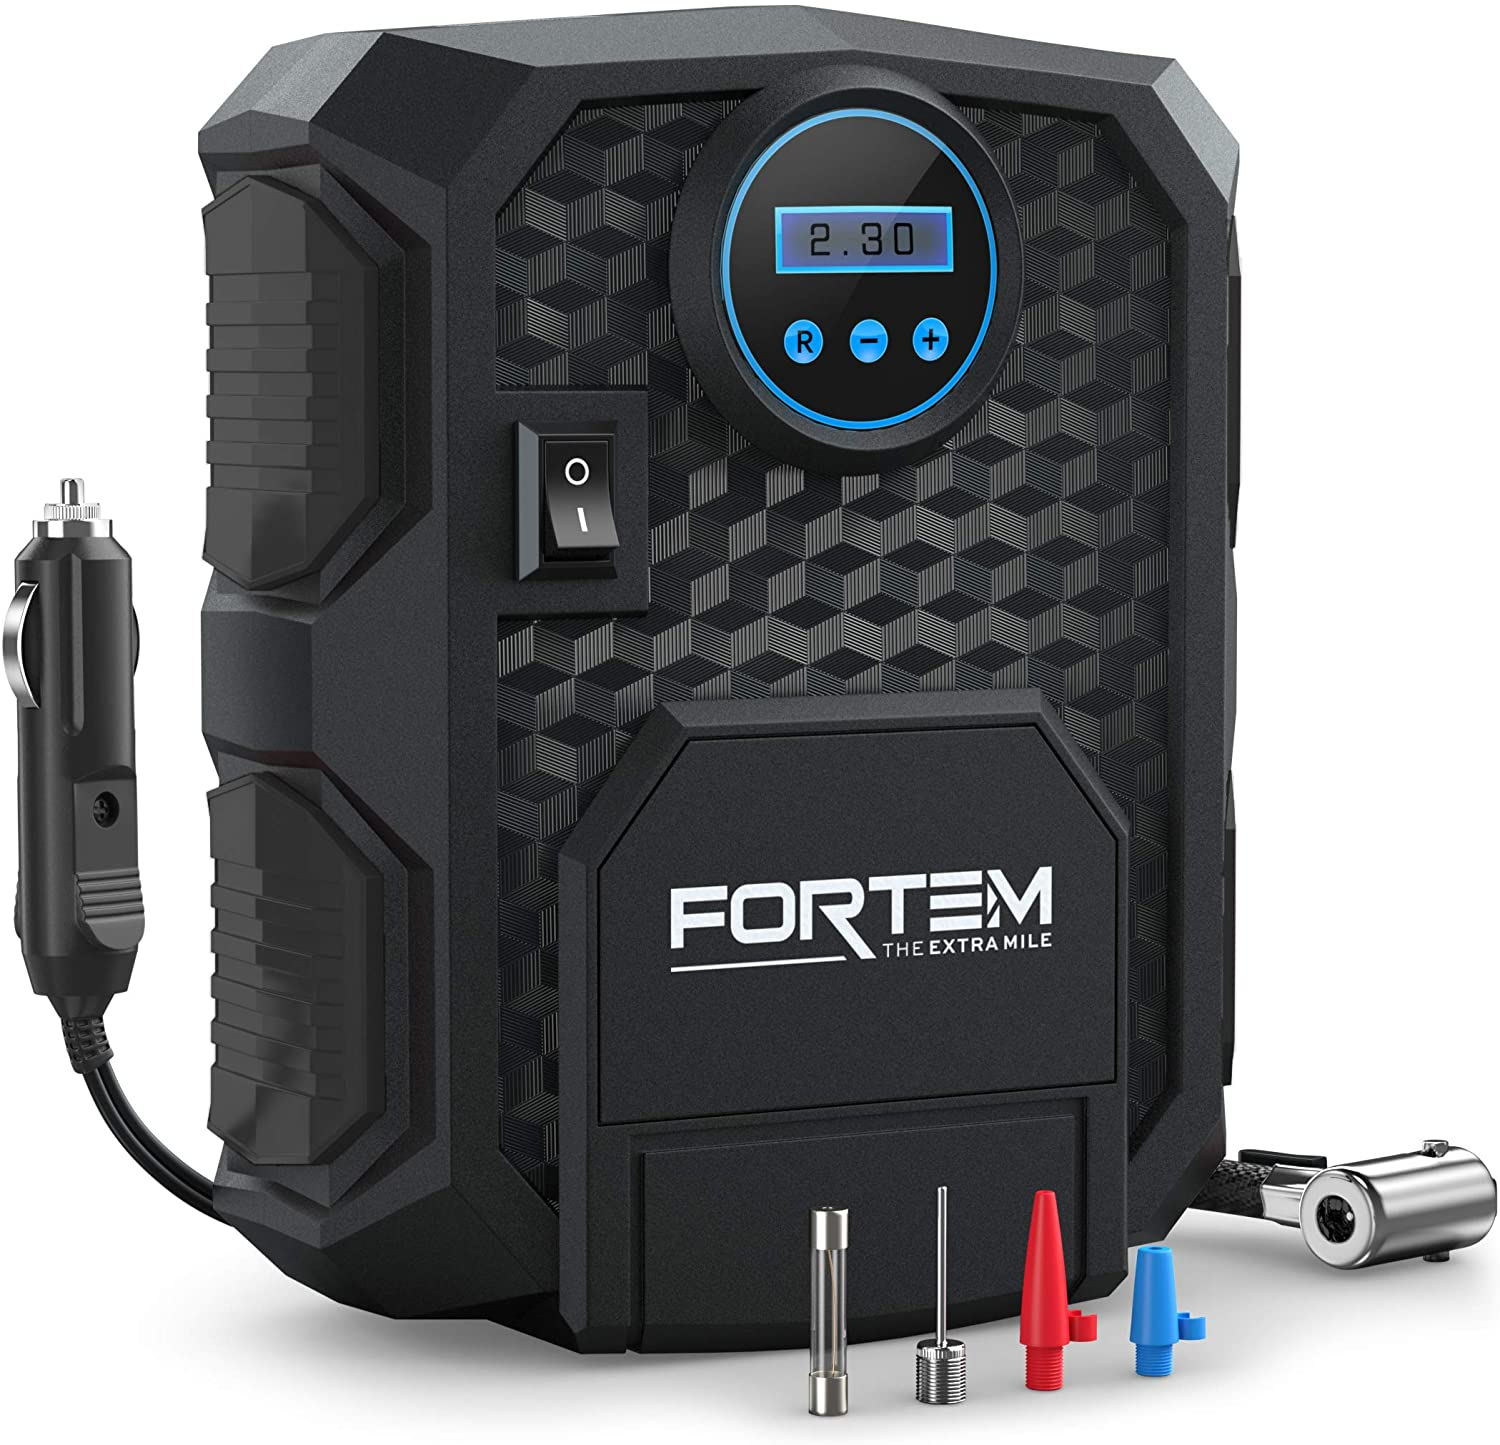 FORTEM Digital Tire Inflator for Car w/Auto Pump/Shut Off Feature, Portable Air Compressor, Carrying Case (Black)